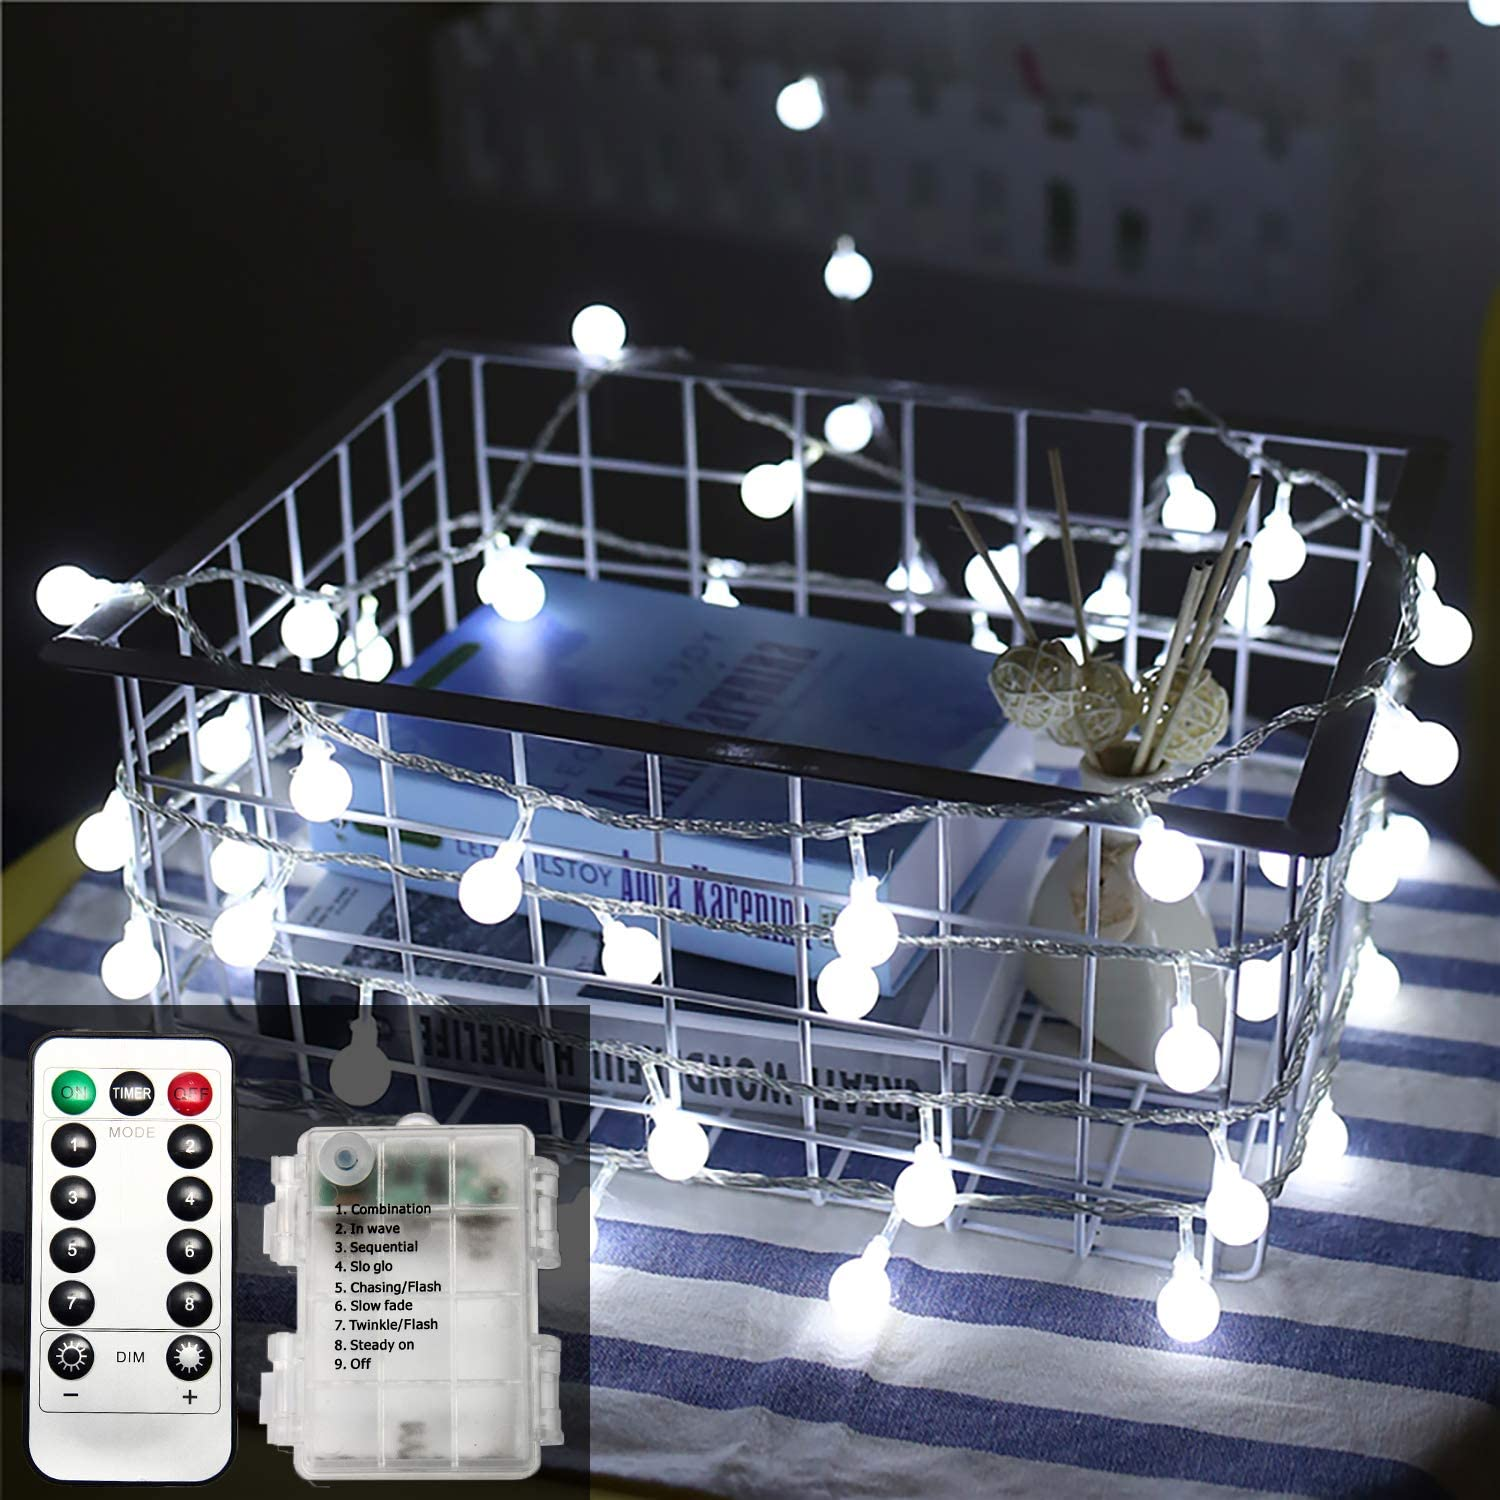 ZOUTOG Battery Operated String Lights, 49ft /15m 120 LED Bulb White Globe String Lights with Remote Controller, Decorative Timer Fairy Light for Christmas/Wedding/Party Indoor and Outdoor - White